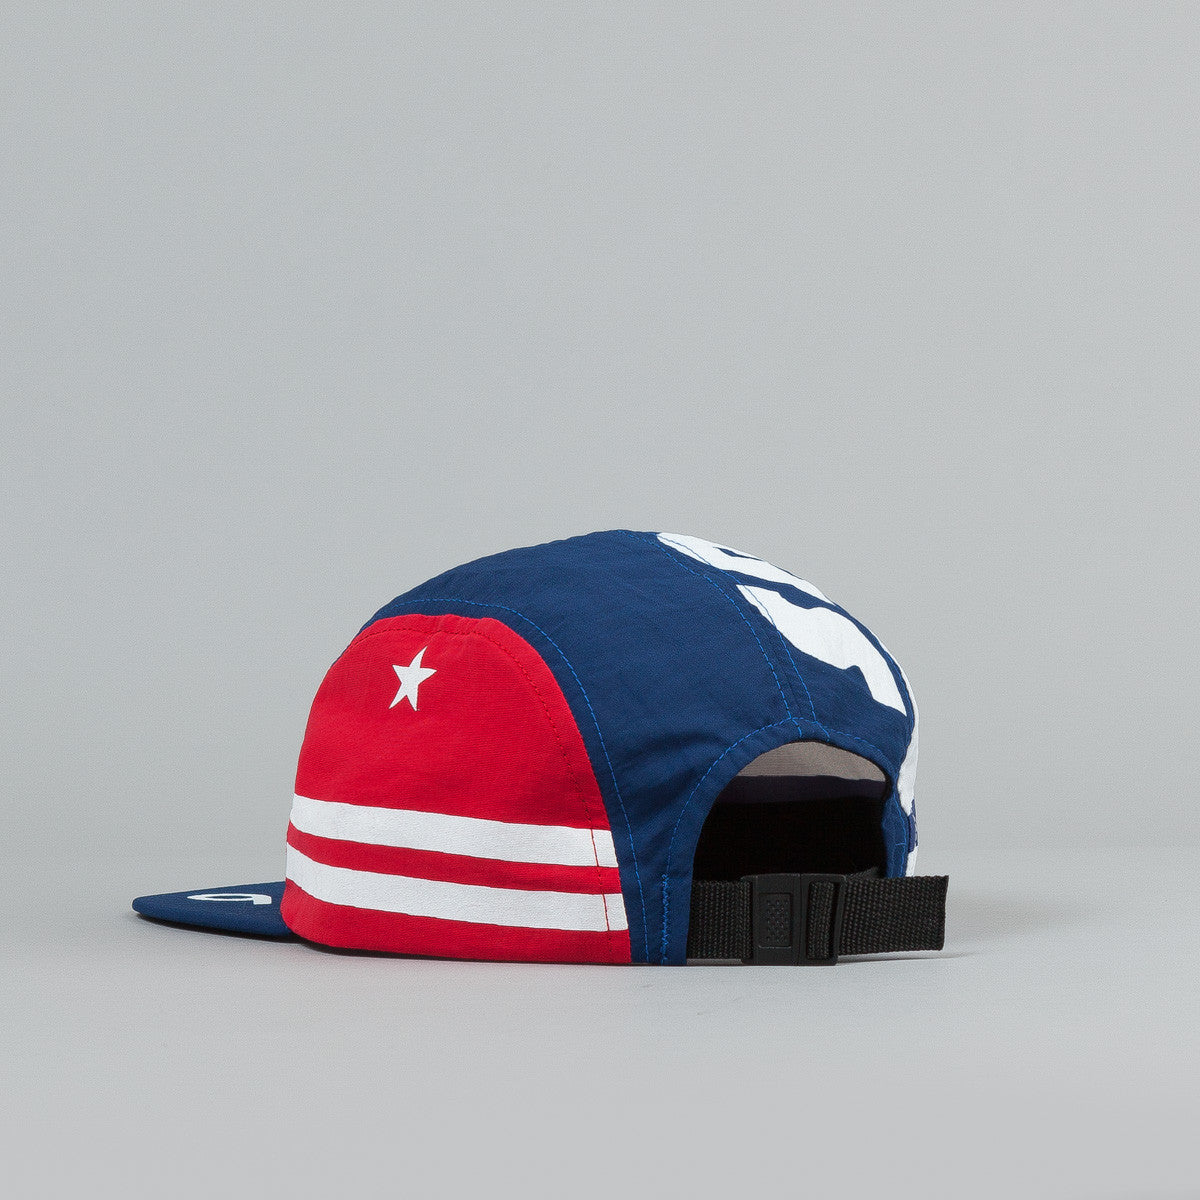 The Decades Spirit of '76 4 Panel Cap - Navy / Red / White Nylon